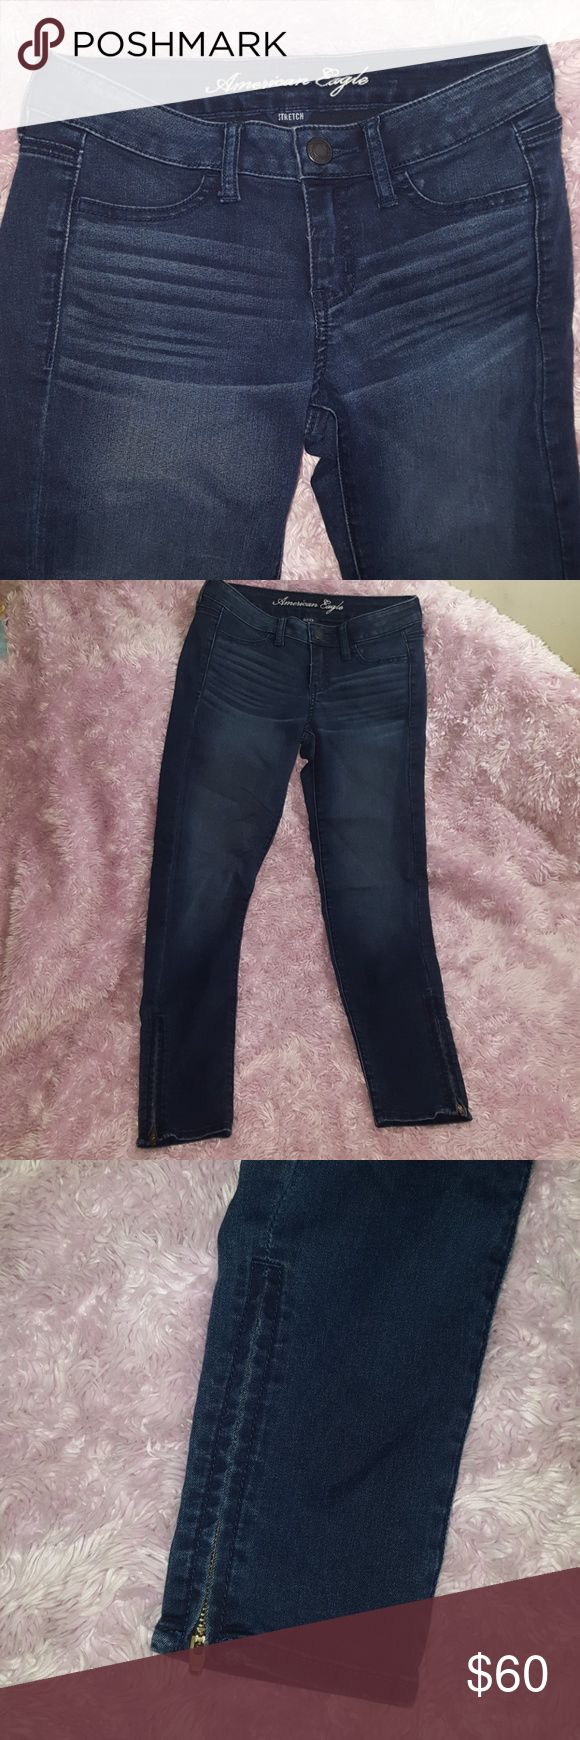 JEGGING Jeans w/ Zipper Ankle NEW American Eagle JEGGING Jeans w/ Zipper Ankle NEW without Tags by American Eagle. Size 2 regular. 69% cotton 29% polyester 2% spandex. Darker wash with the lighter whiskered effects. Zipper at ankles! HOT STYLE FOR THIS SEASON! I ship daily (#B2 location) American Eagle Outfitters Jeans